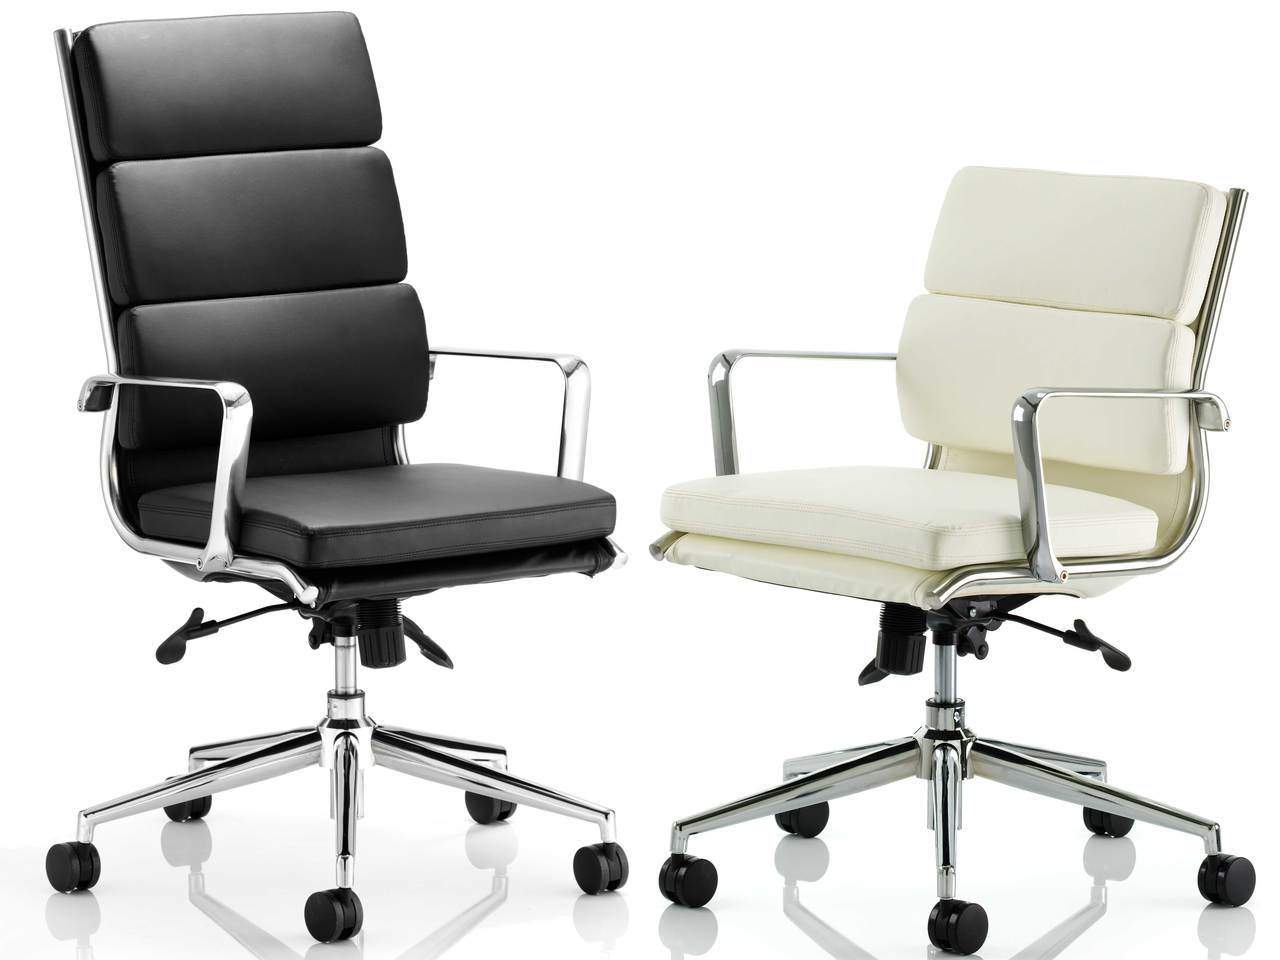 Savoy Medium and High Back Leather Executive Office Chair in Ivory or Black